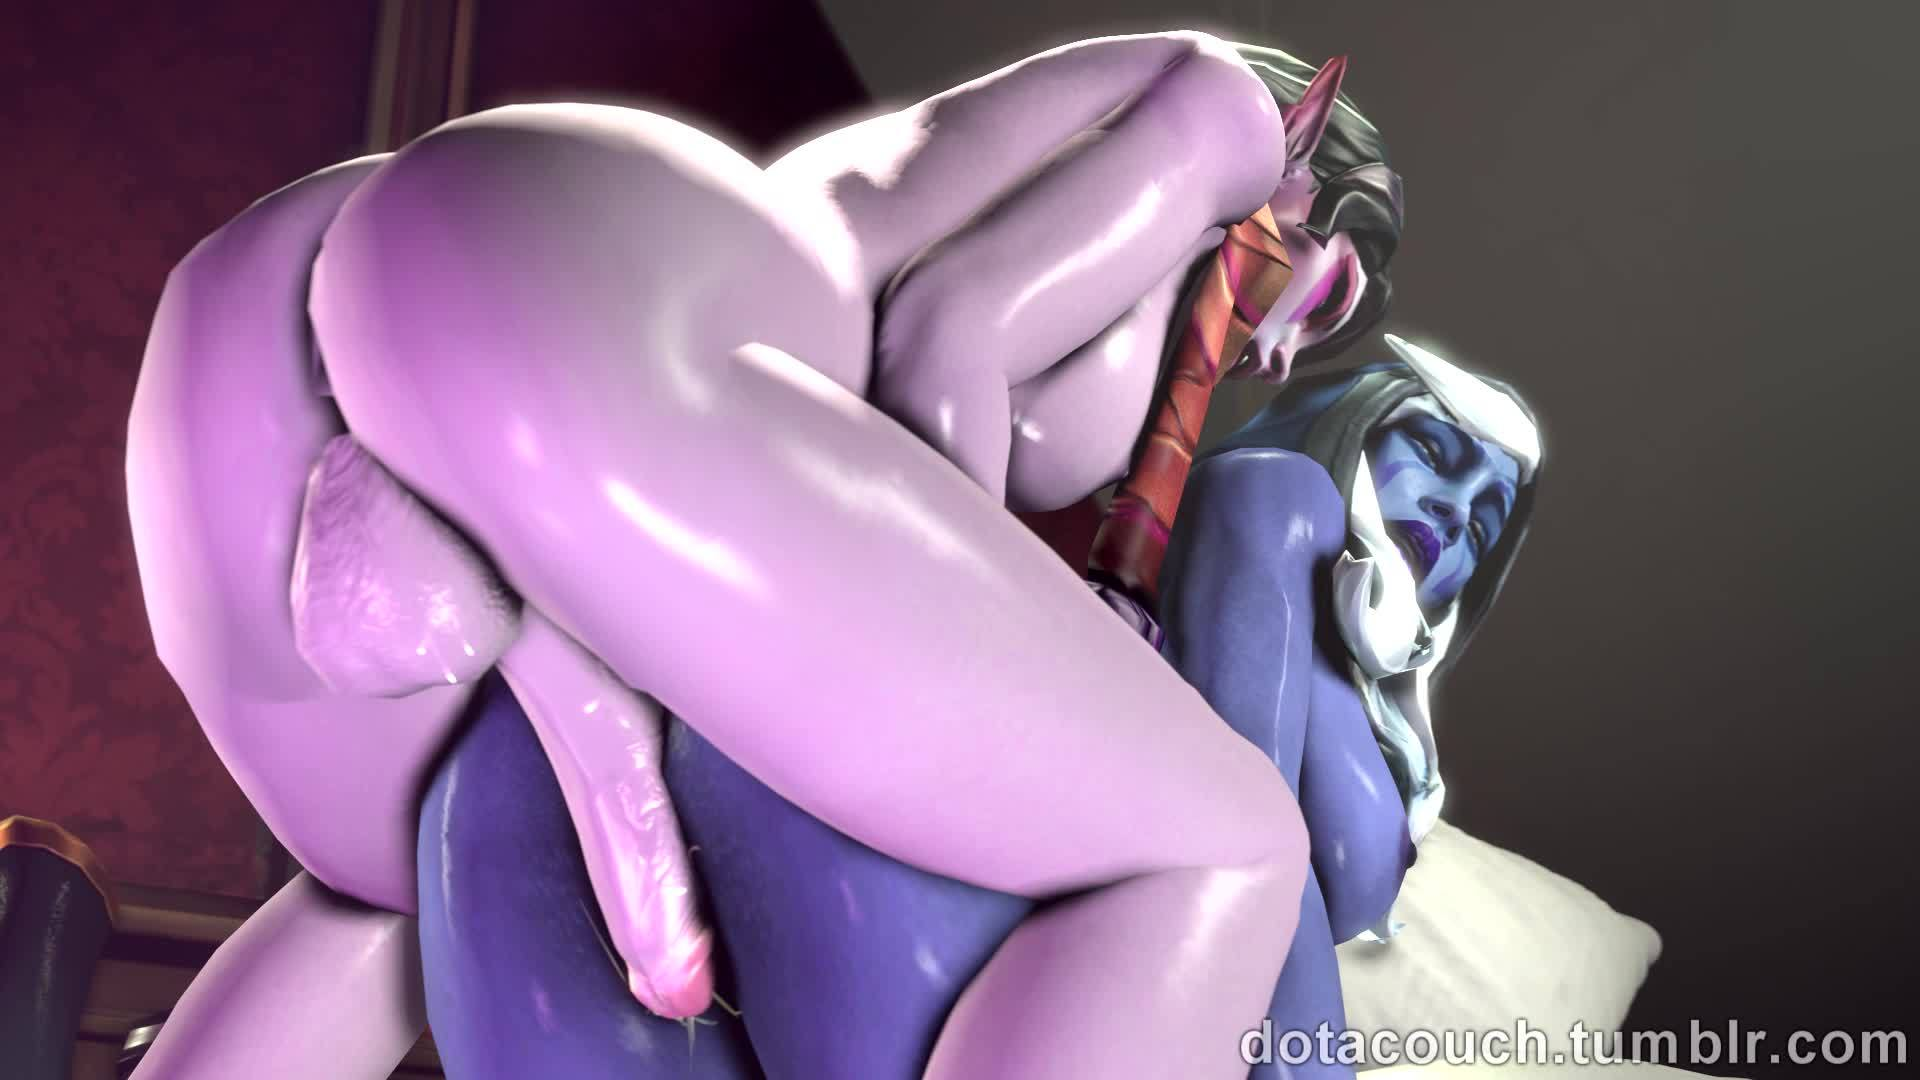 Assassin 3d hentai picture sex natural cuties